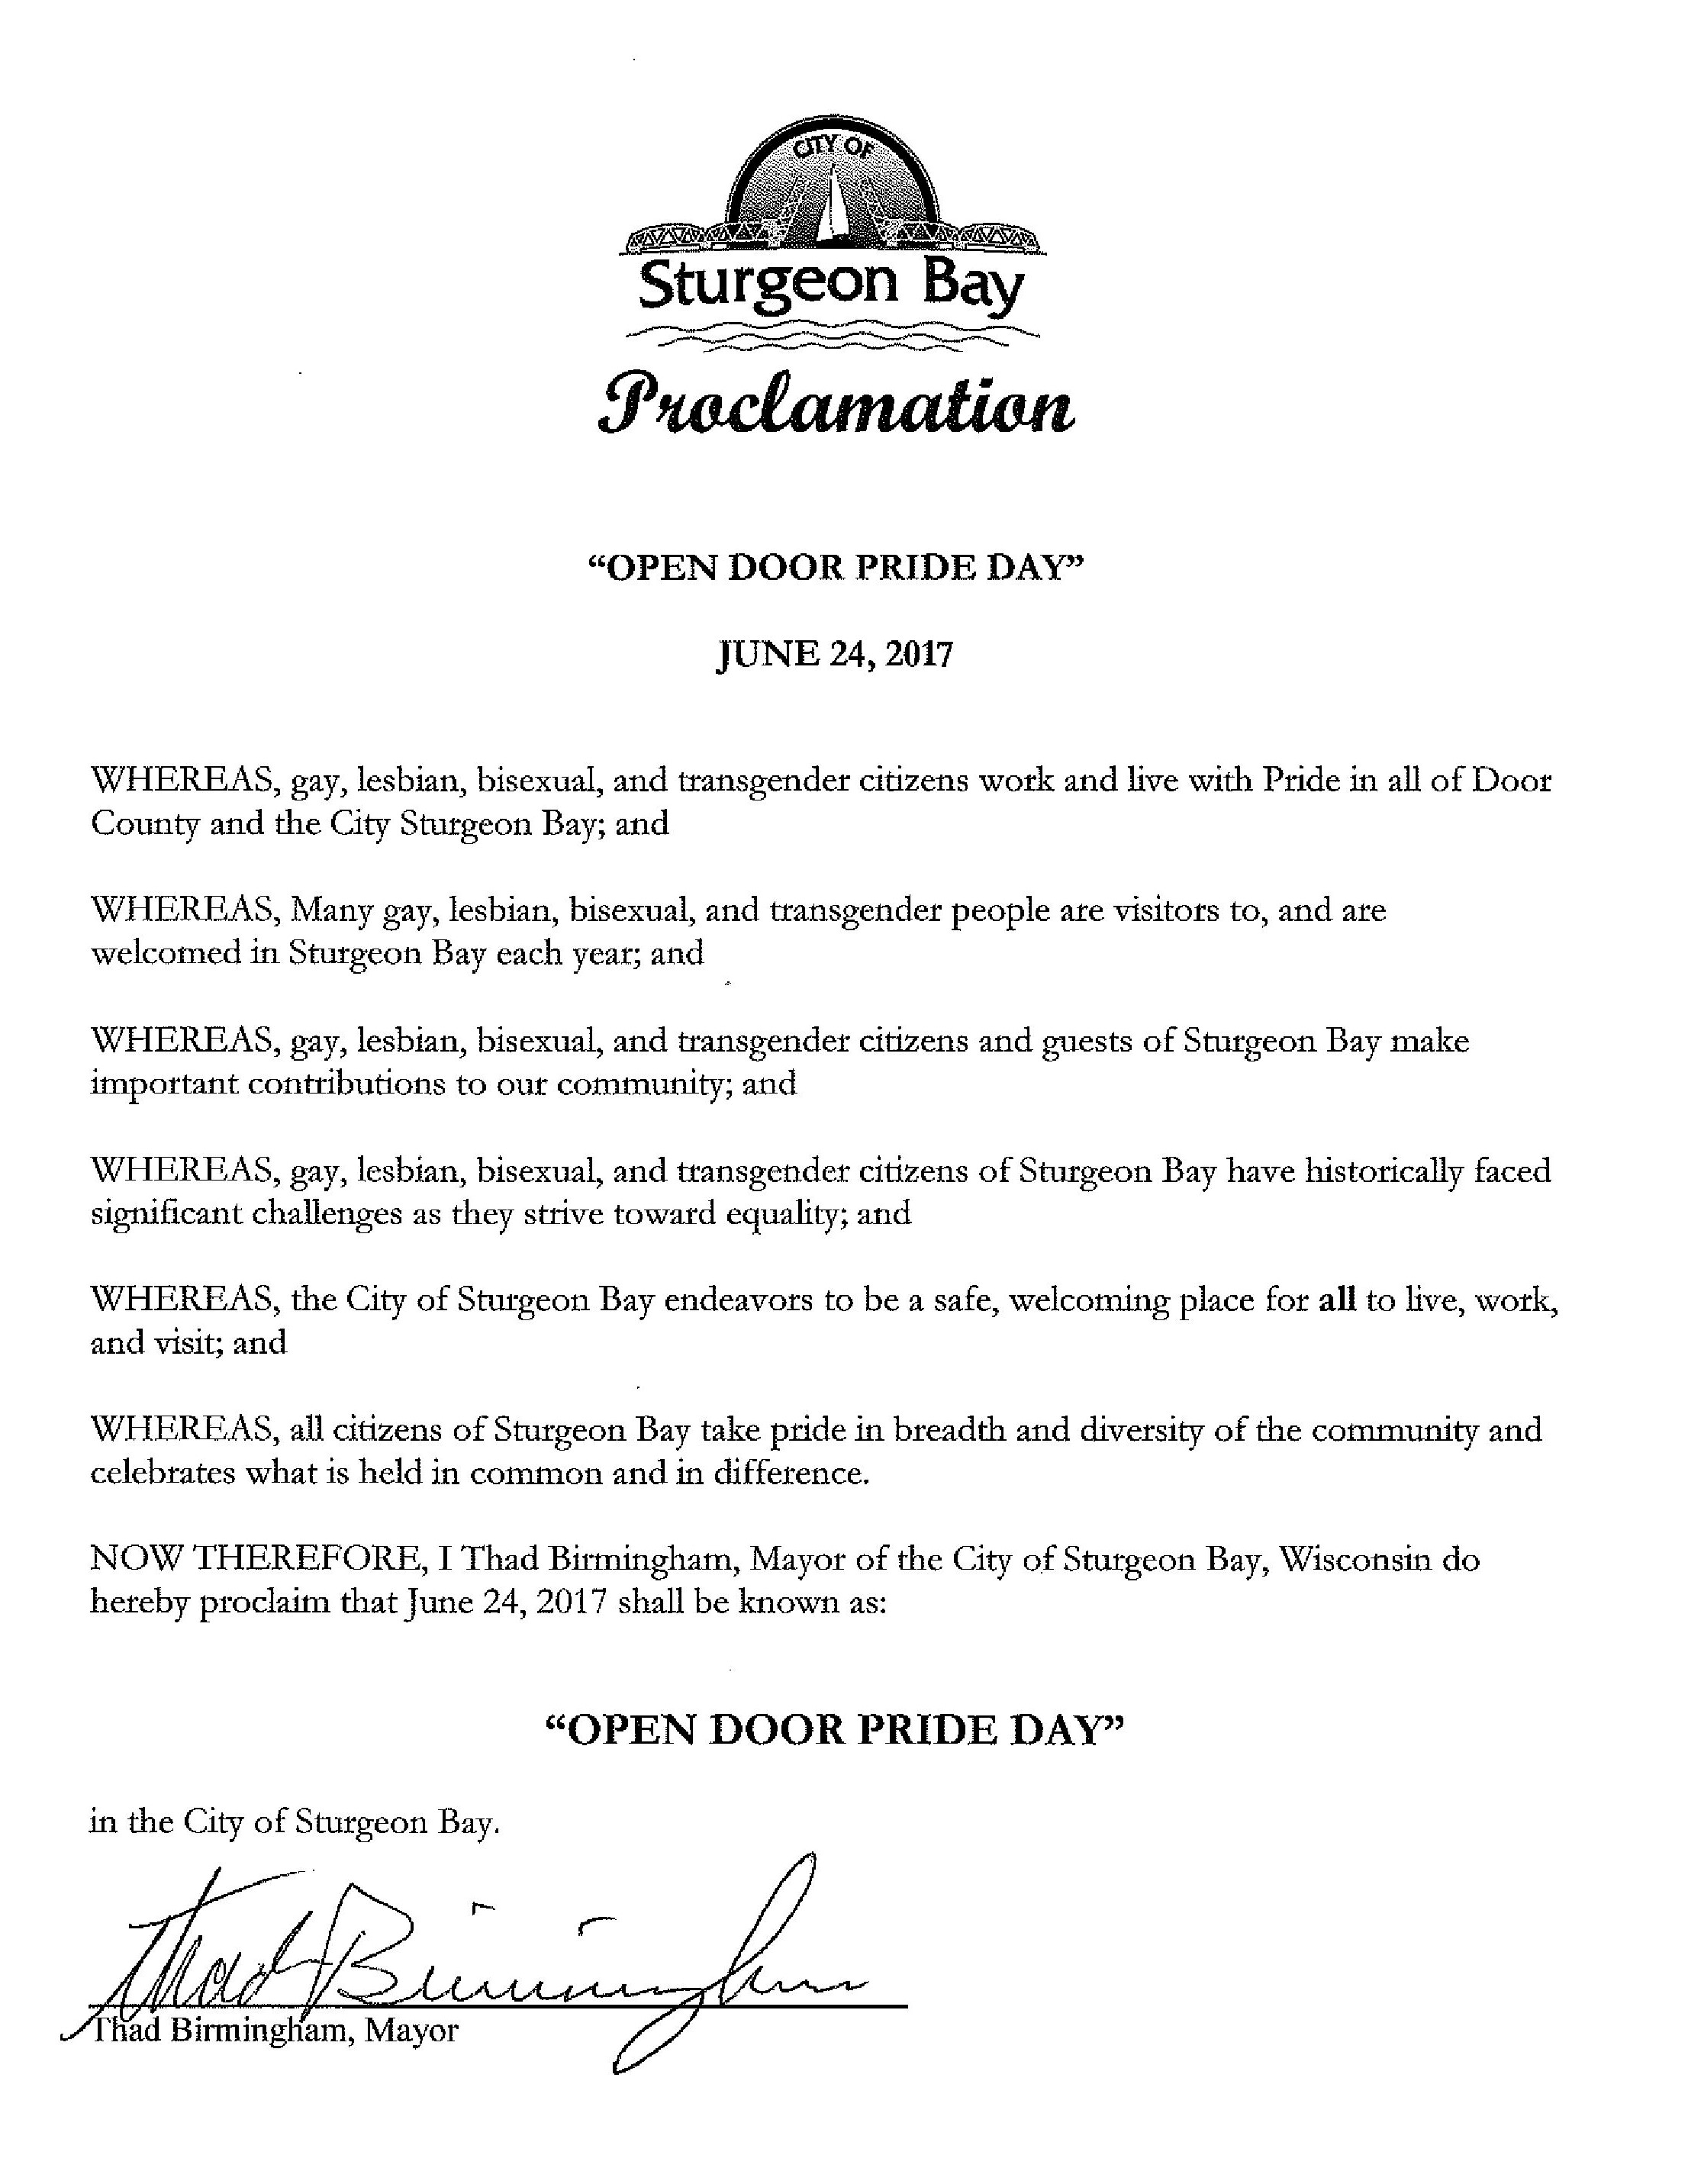 The City of Sturgeon Bay at a town meeting on 6/20/2017 issued this proclamation declaring Saturday June 24th 2017 u201cOpen Door Pride Dayu201d  sc 1 th 255 & Open Door Pride pezcame.com